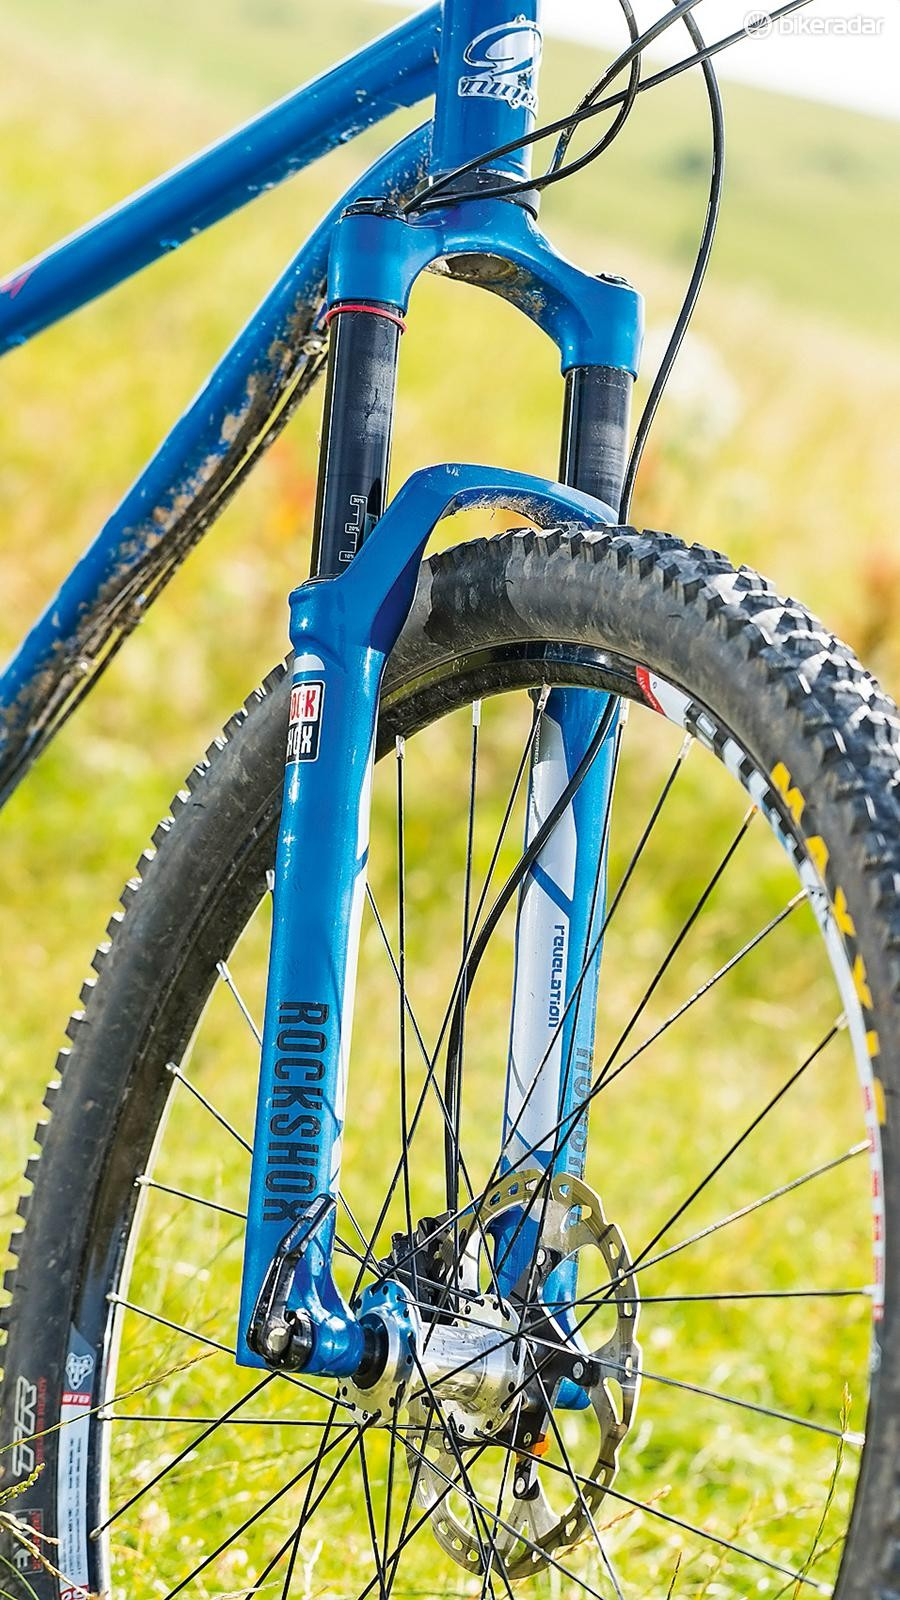 RockShox' Revelation fork twinned with a 67-degree head angle means you can go barrelling into dicey corners and emerge unscathed